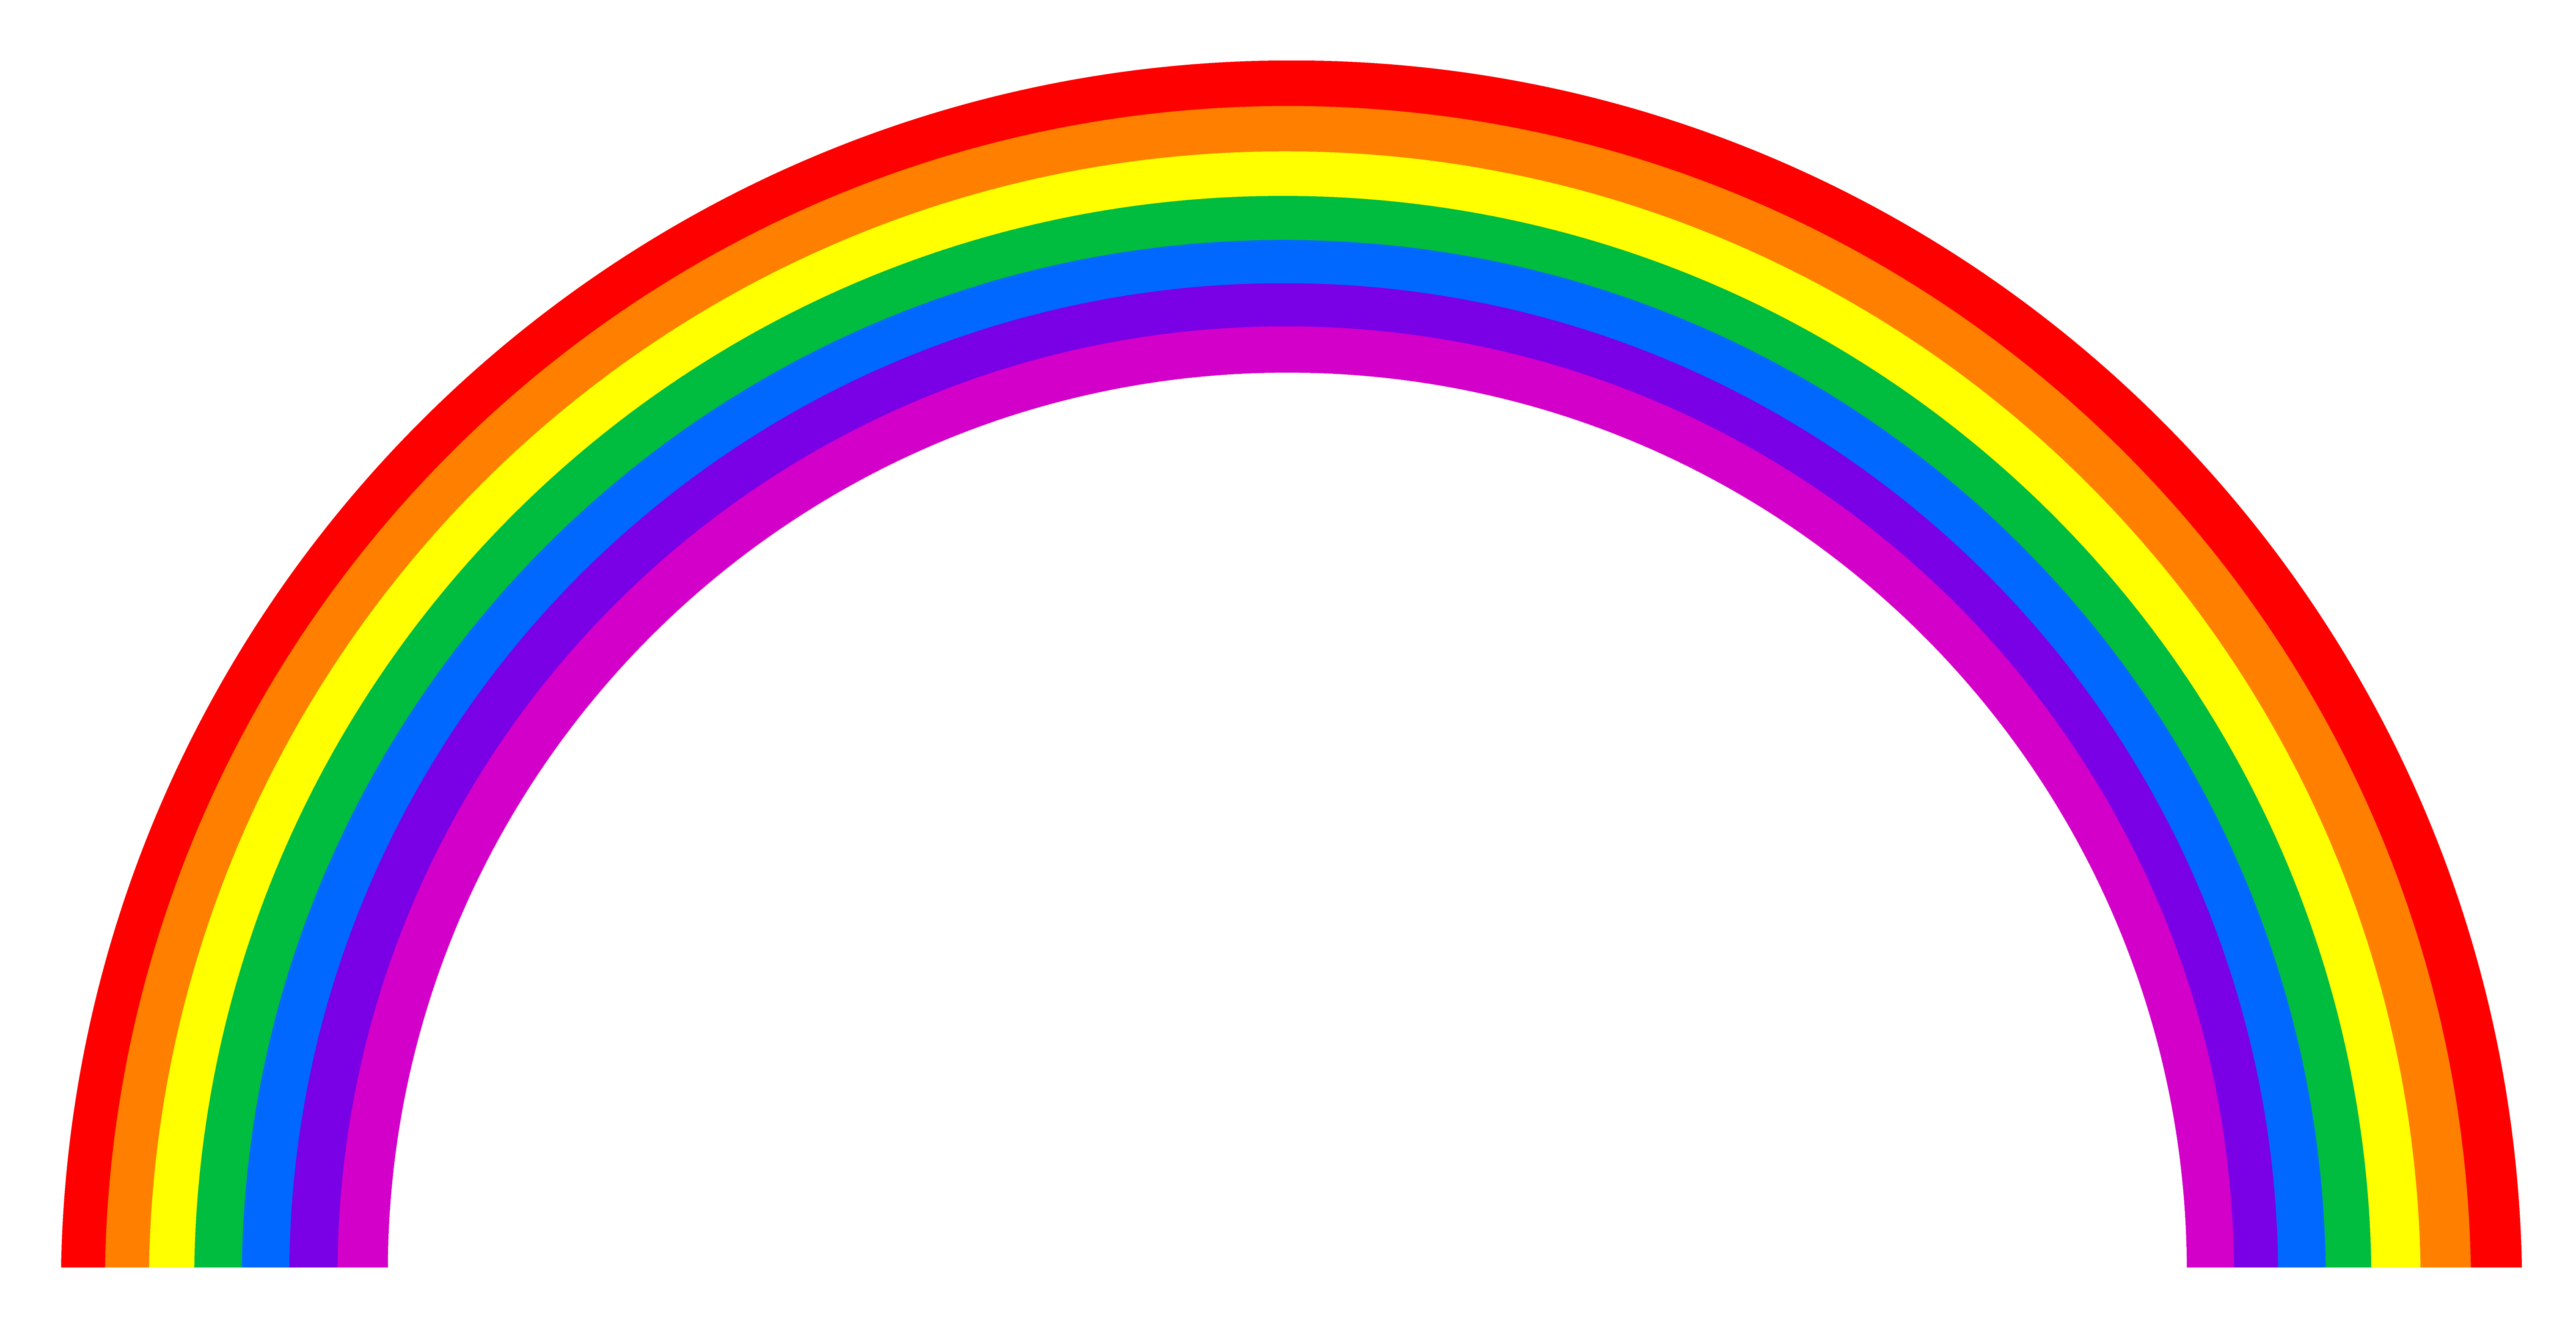 rainbow%20clipart%20black%20and%20white